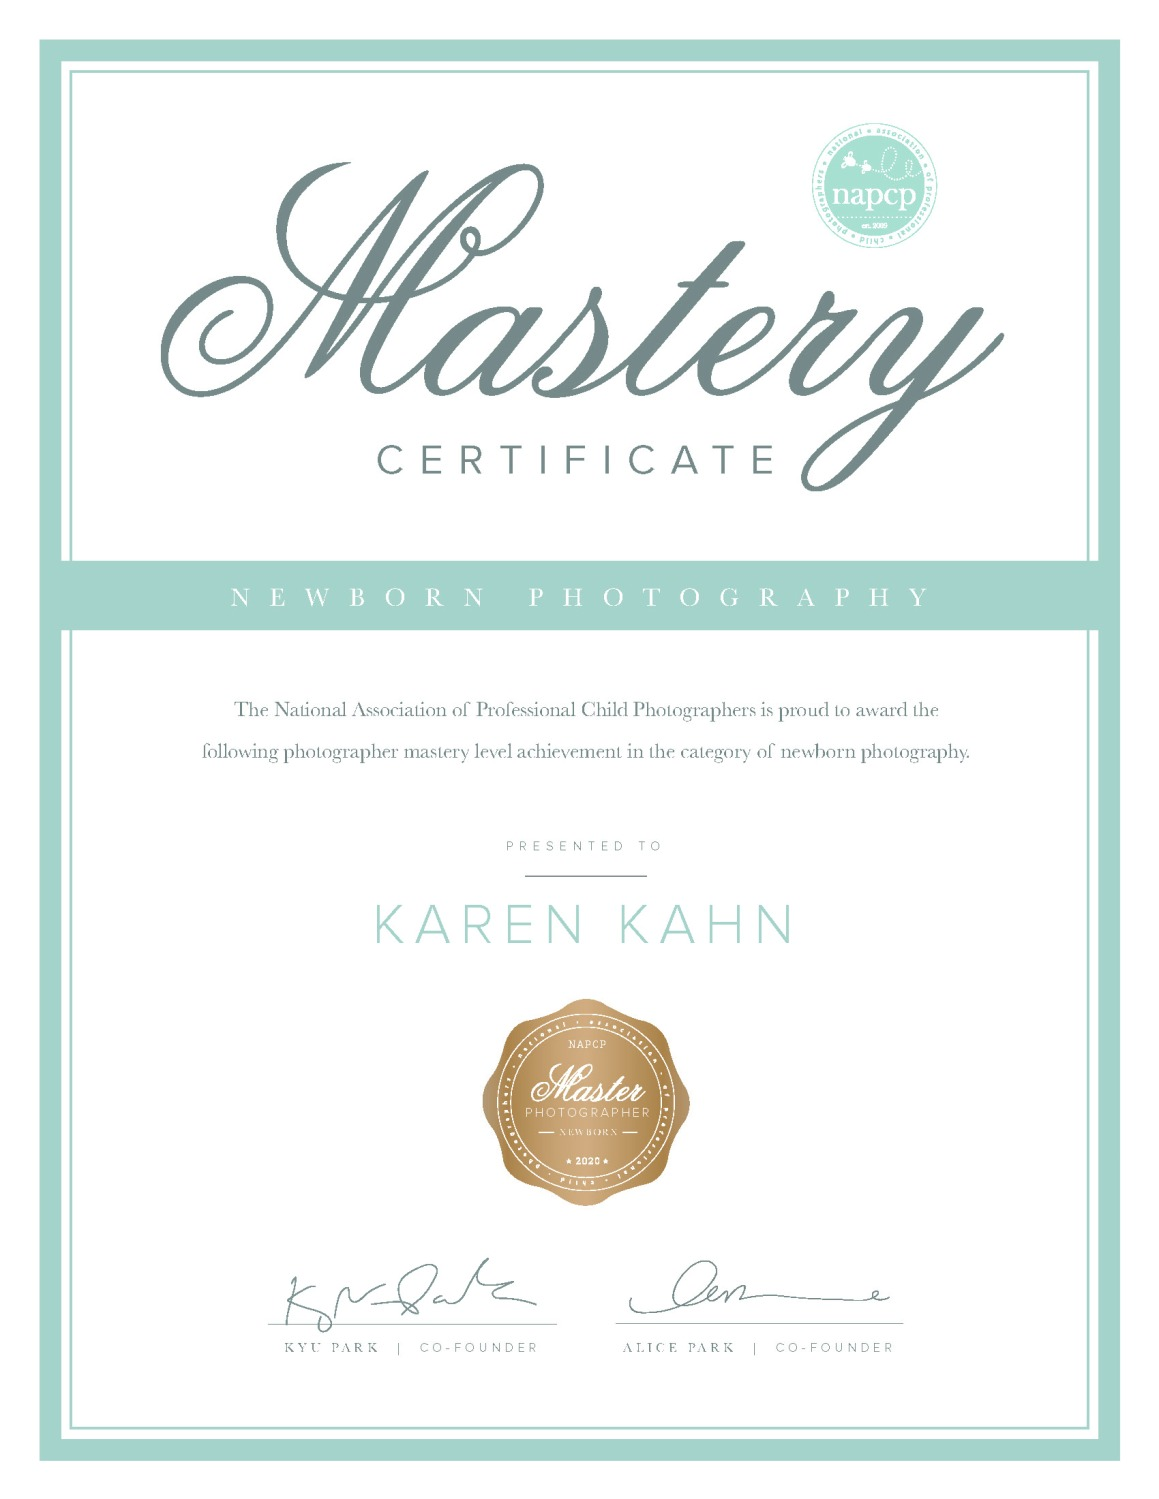 NAPCP Mastery Certificate of Newborn Photography, Karen Kahn, NAPCP Master Photographer Newborn Seal